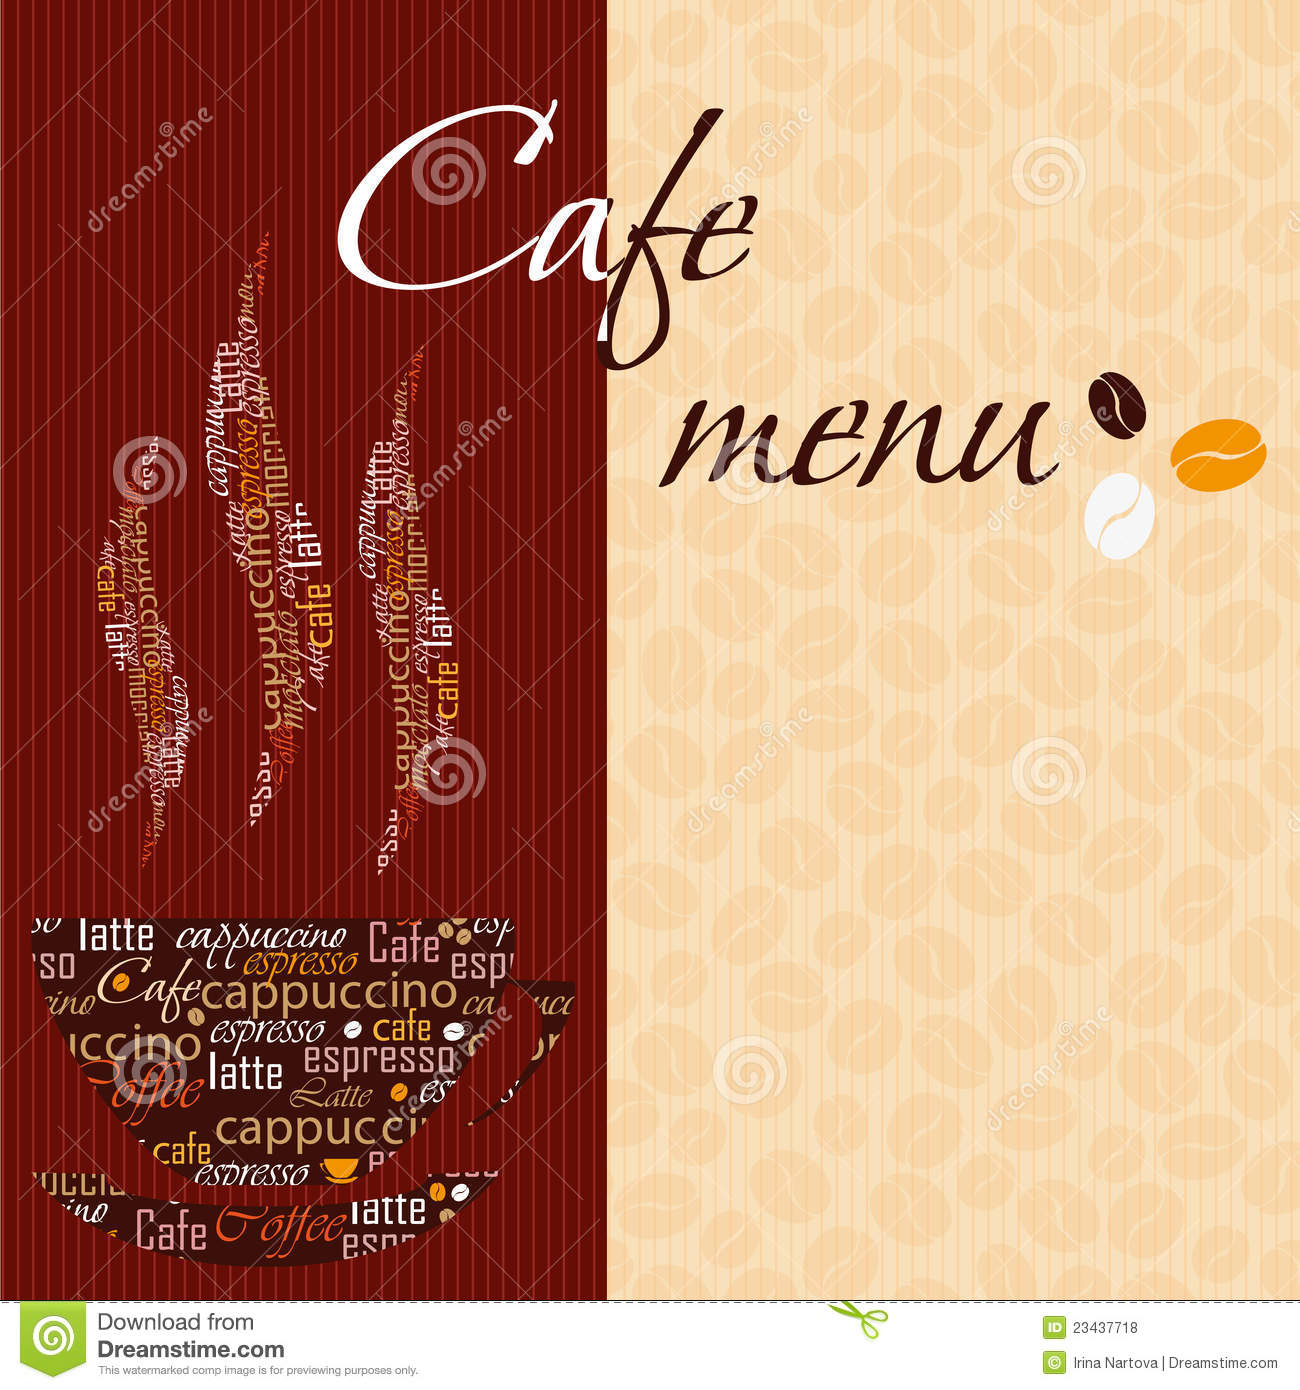 Template of a cafe menu royalty free stock photos image for Cafe menu design template free download